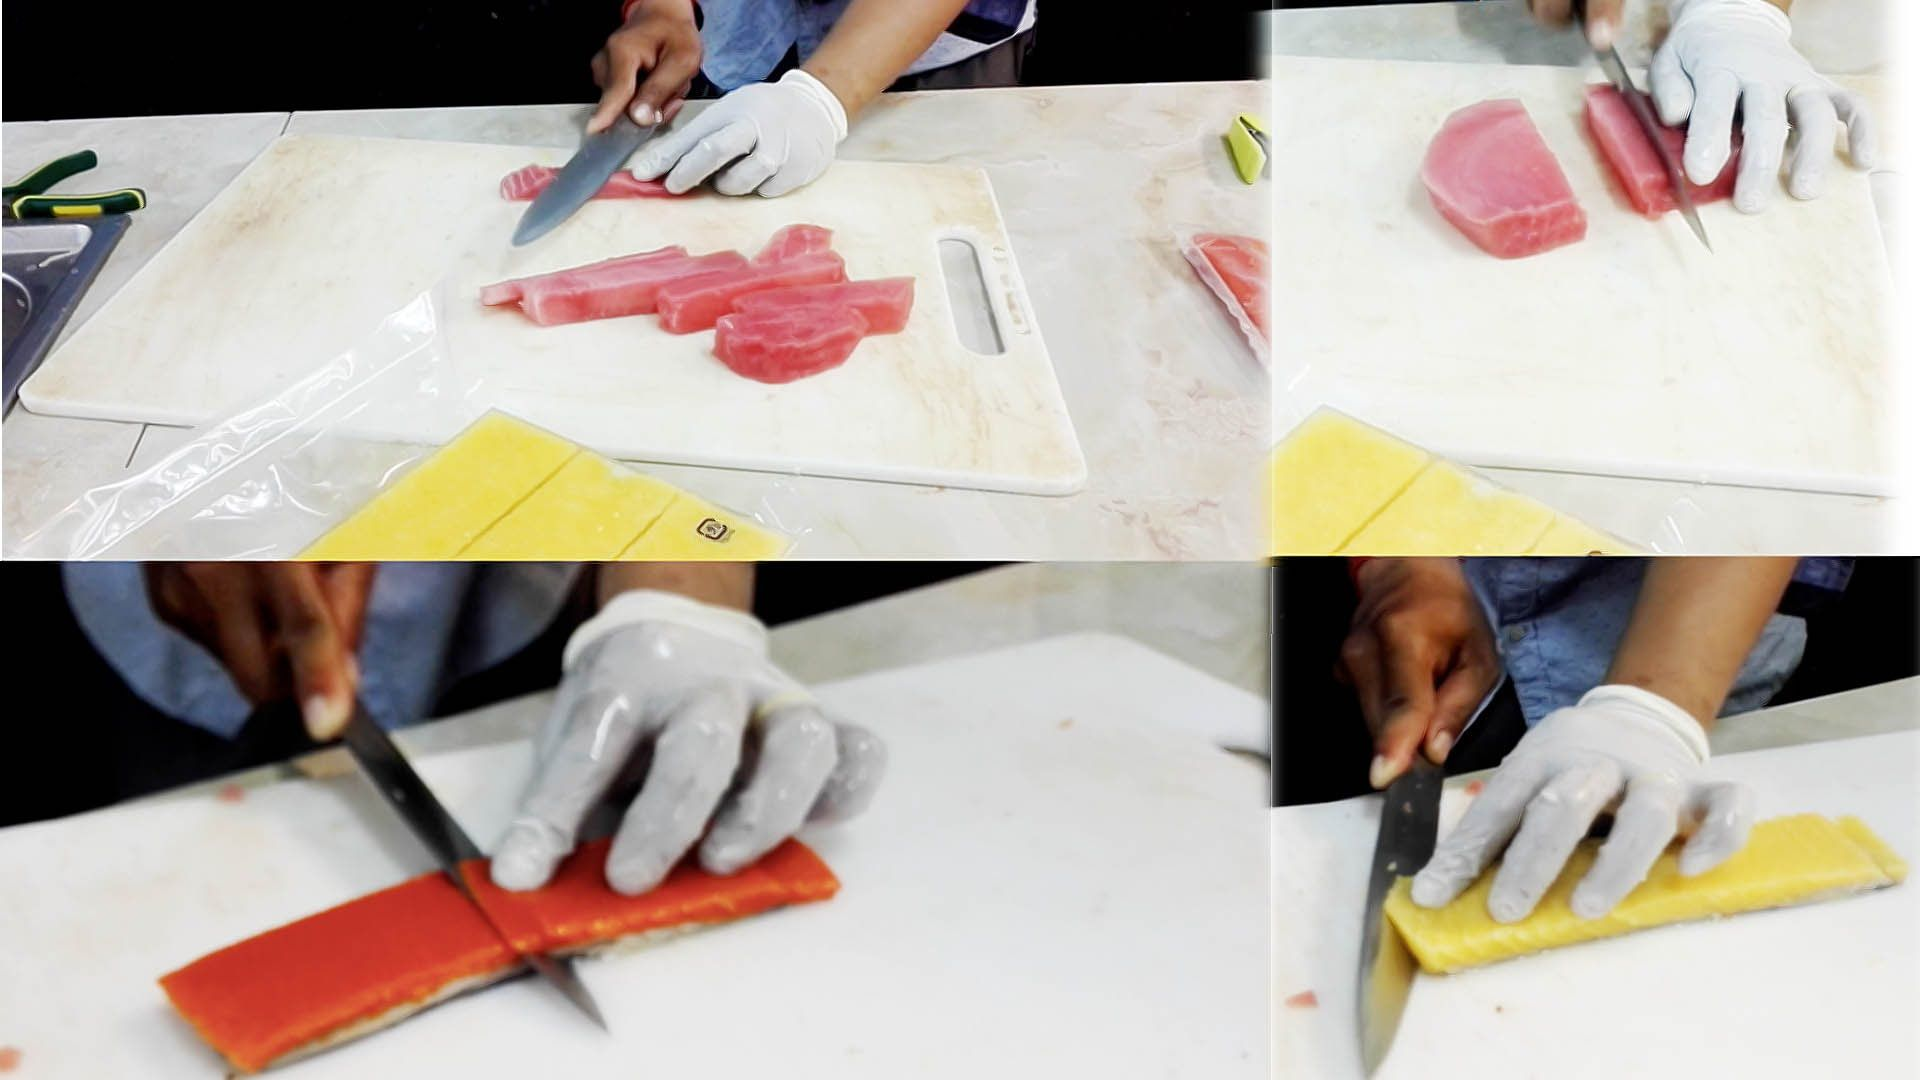 Asian Food | Japanese Food | Tuna Fish Meat, Red and Yellow Neshen In Ca...